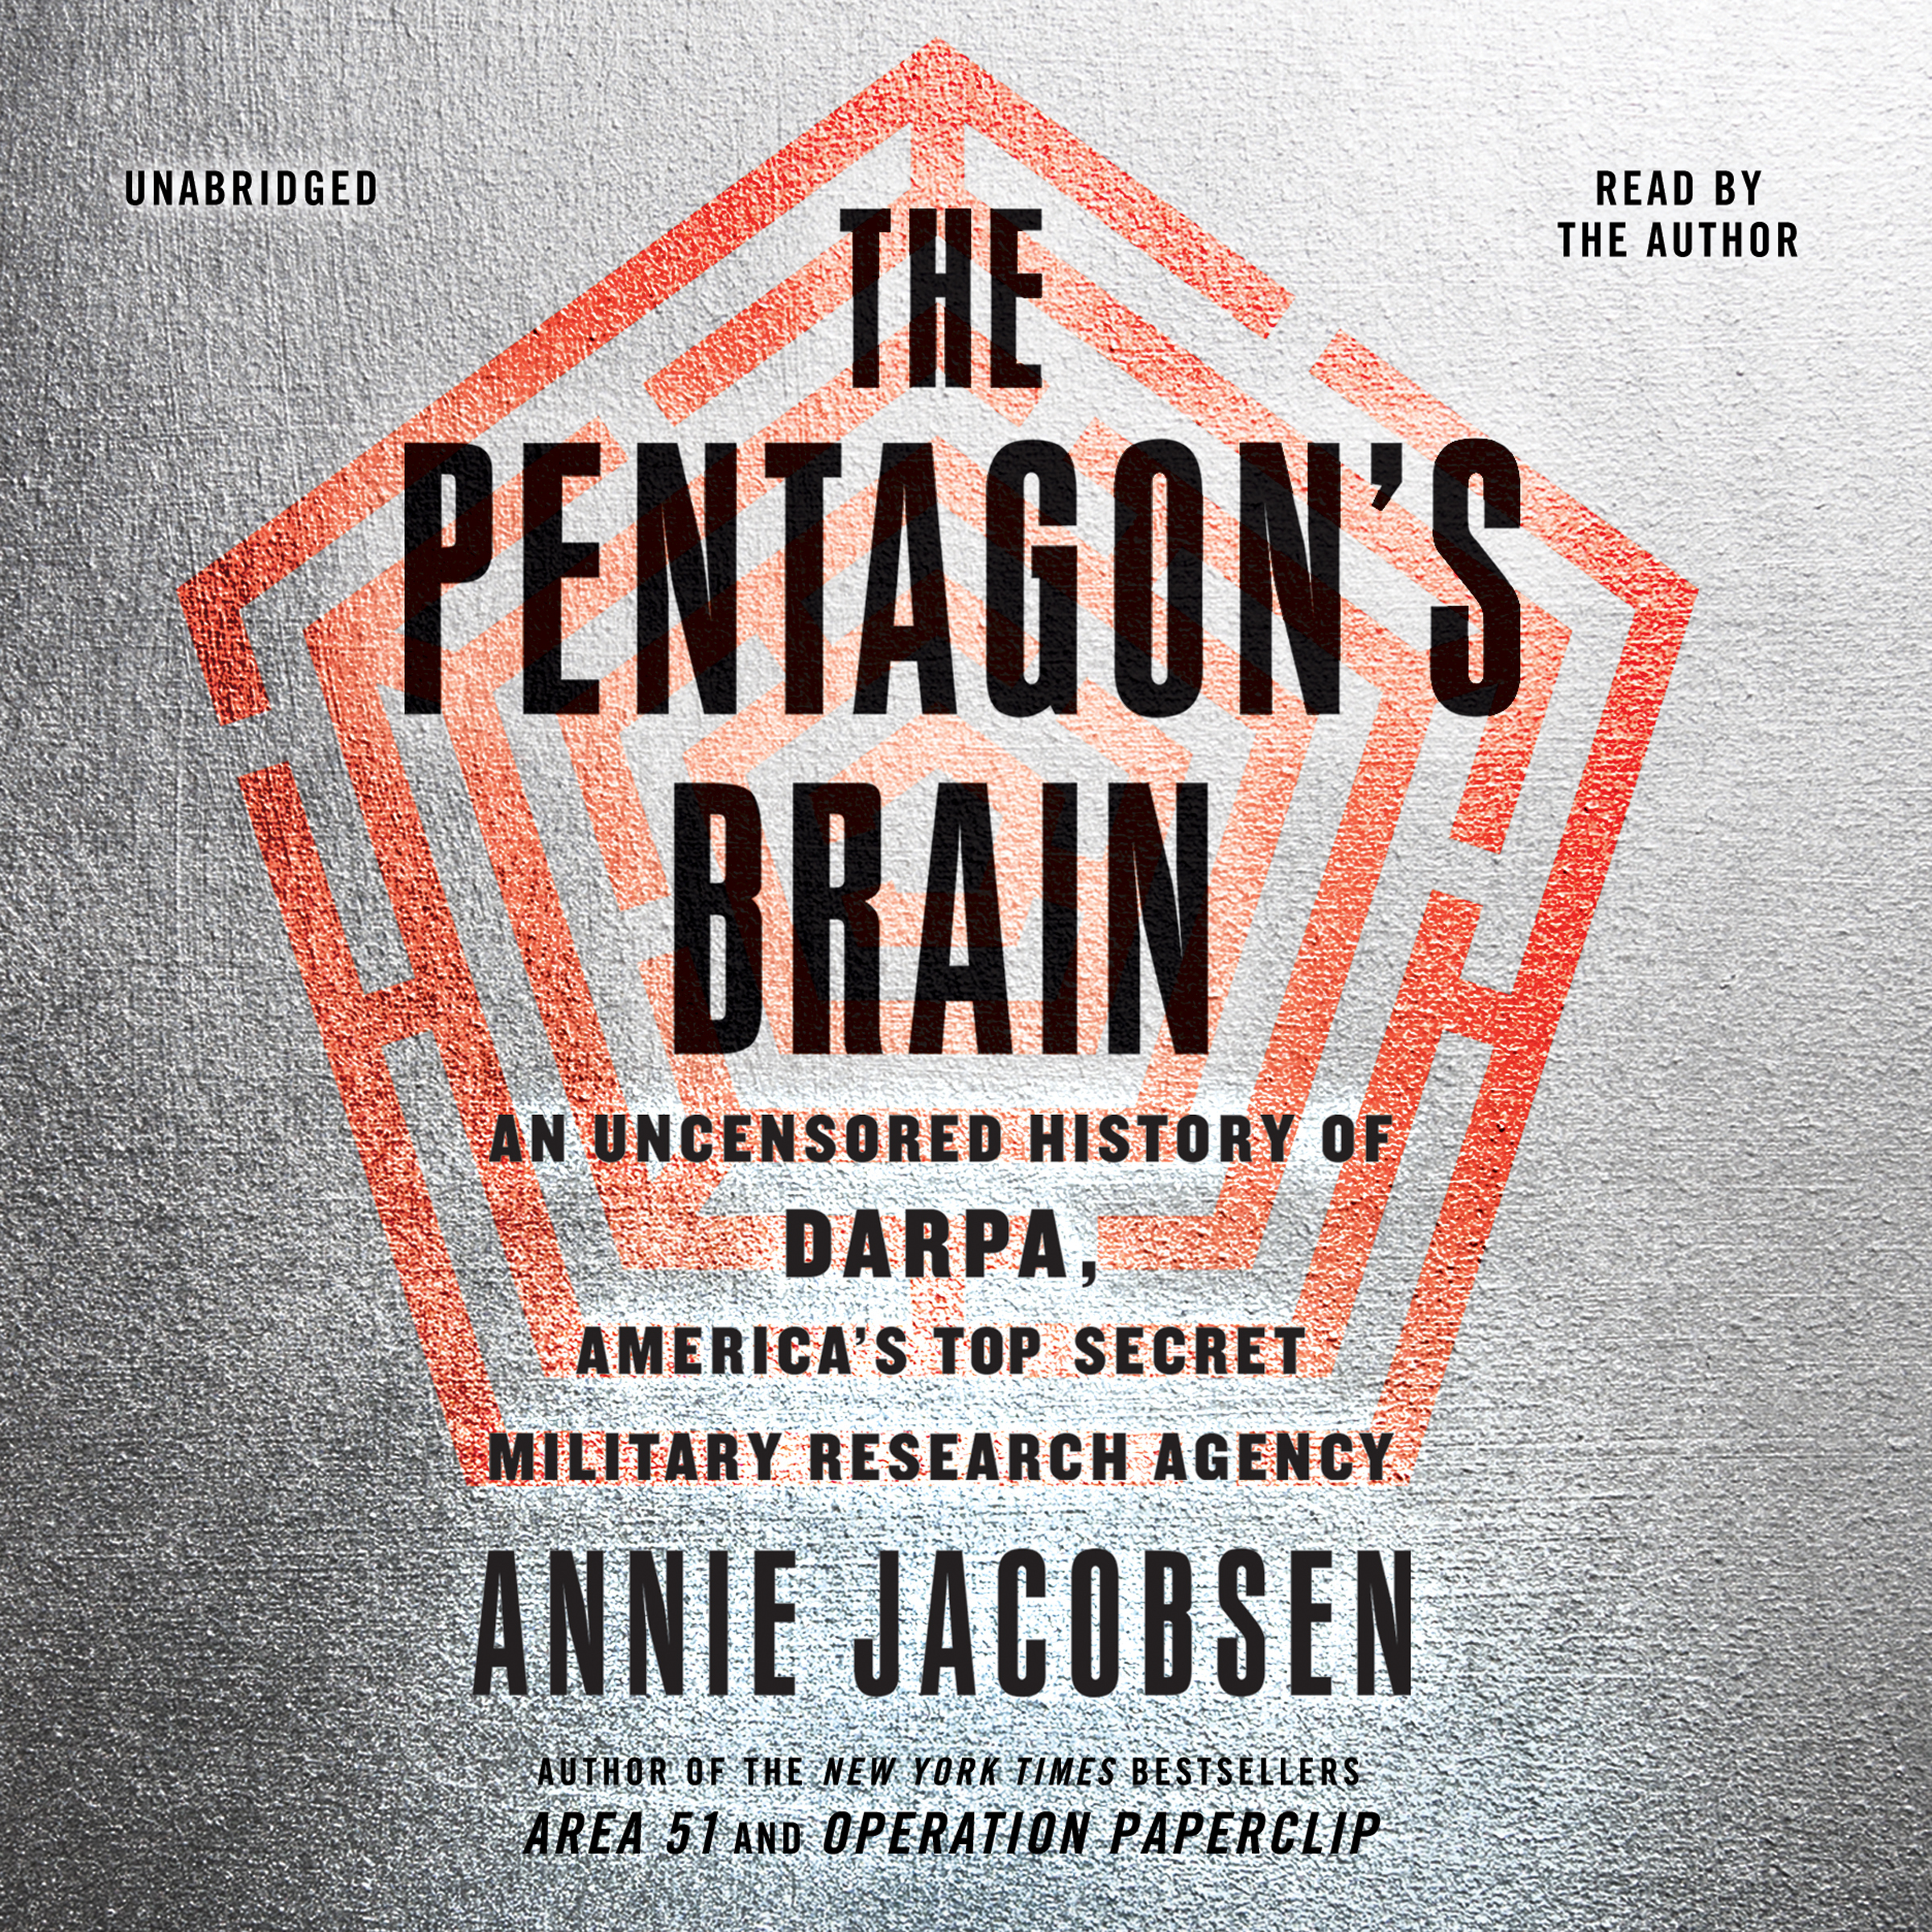 Printable The Pentagon's Brain: An Uncensored History of DARPA, America's Top-Secret Military Research Agency Audiobook Cover Art